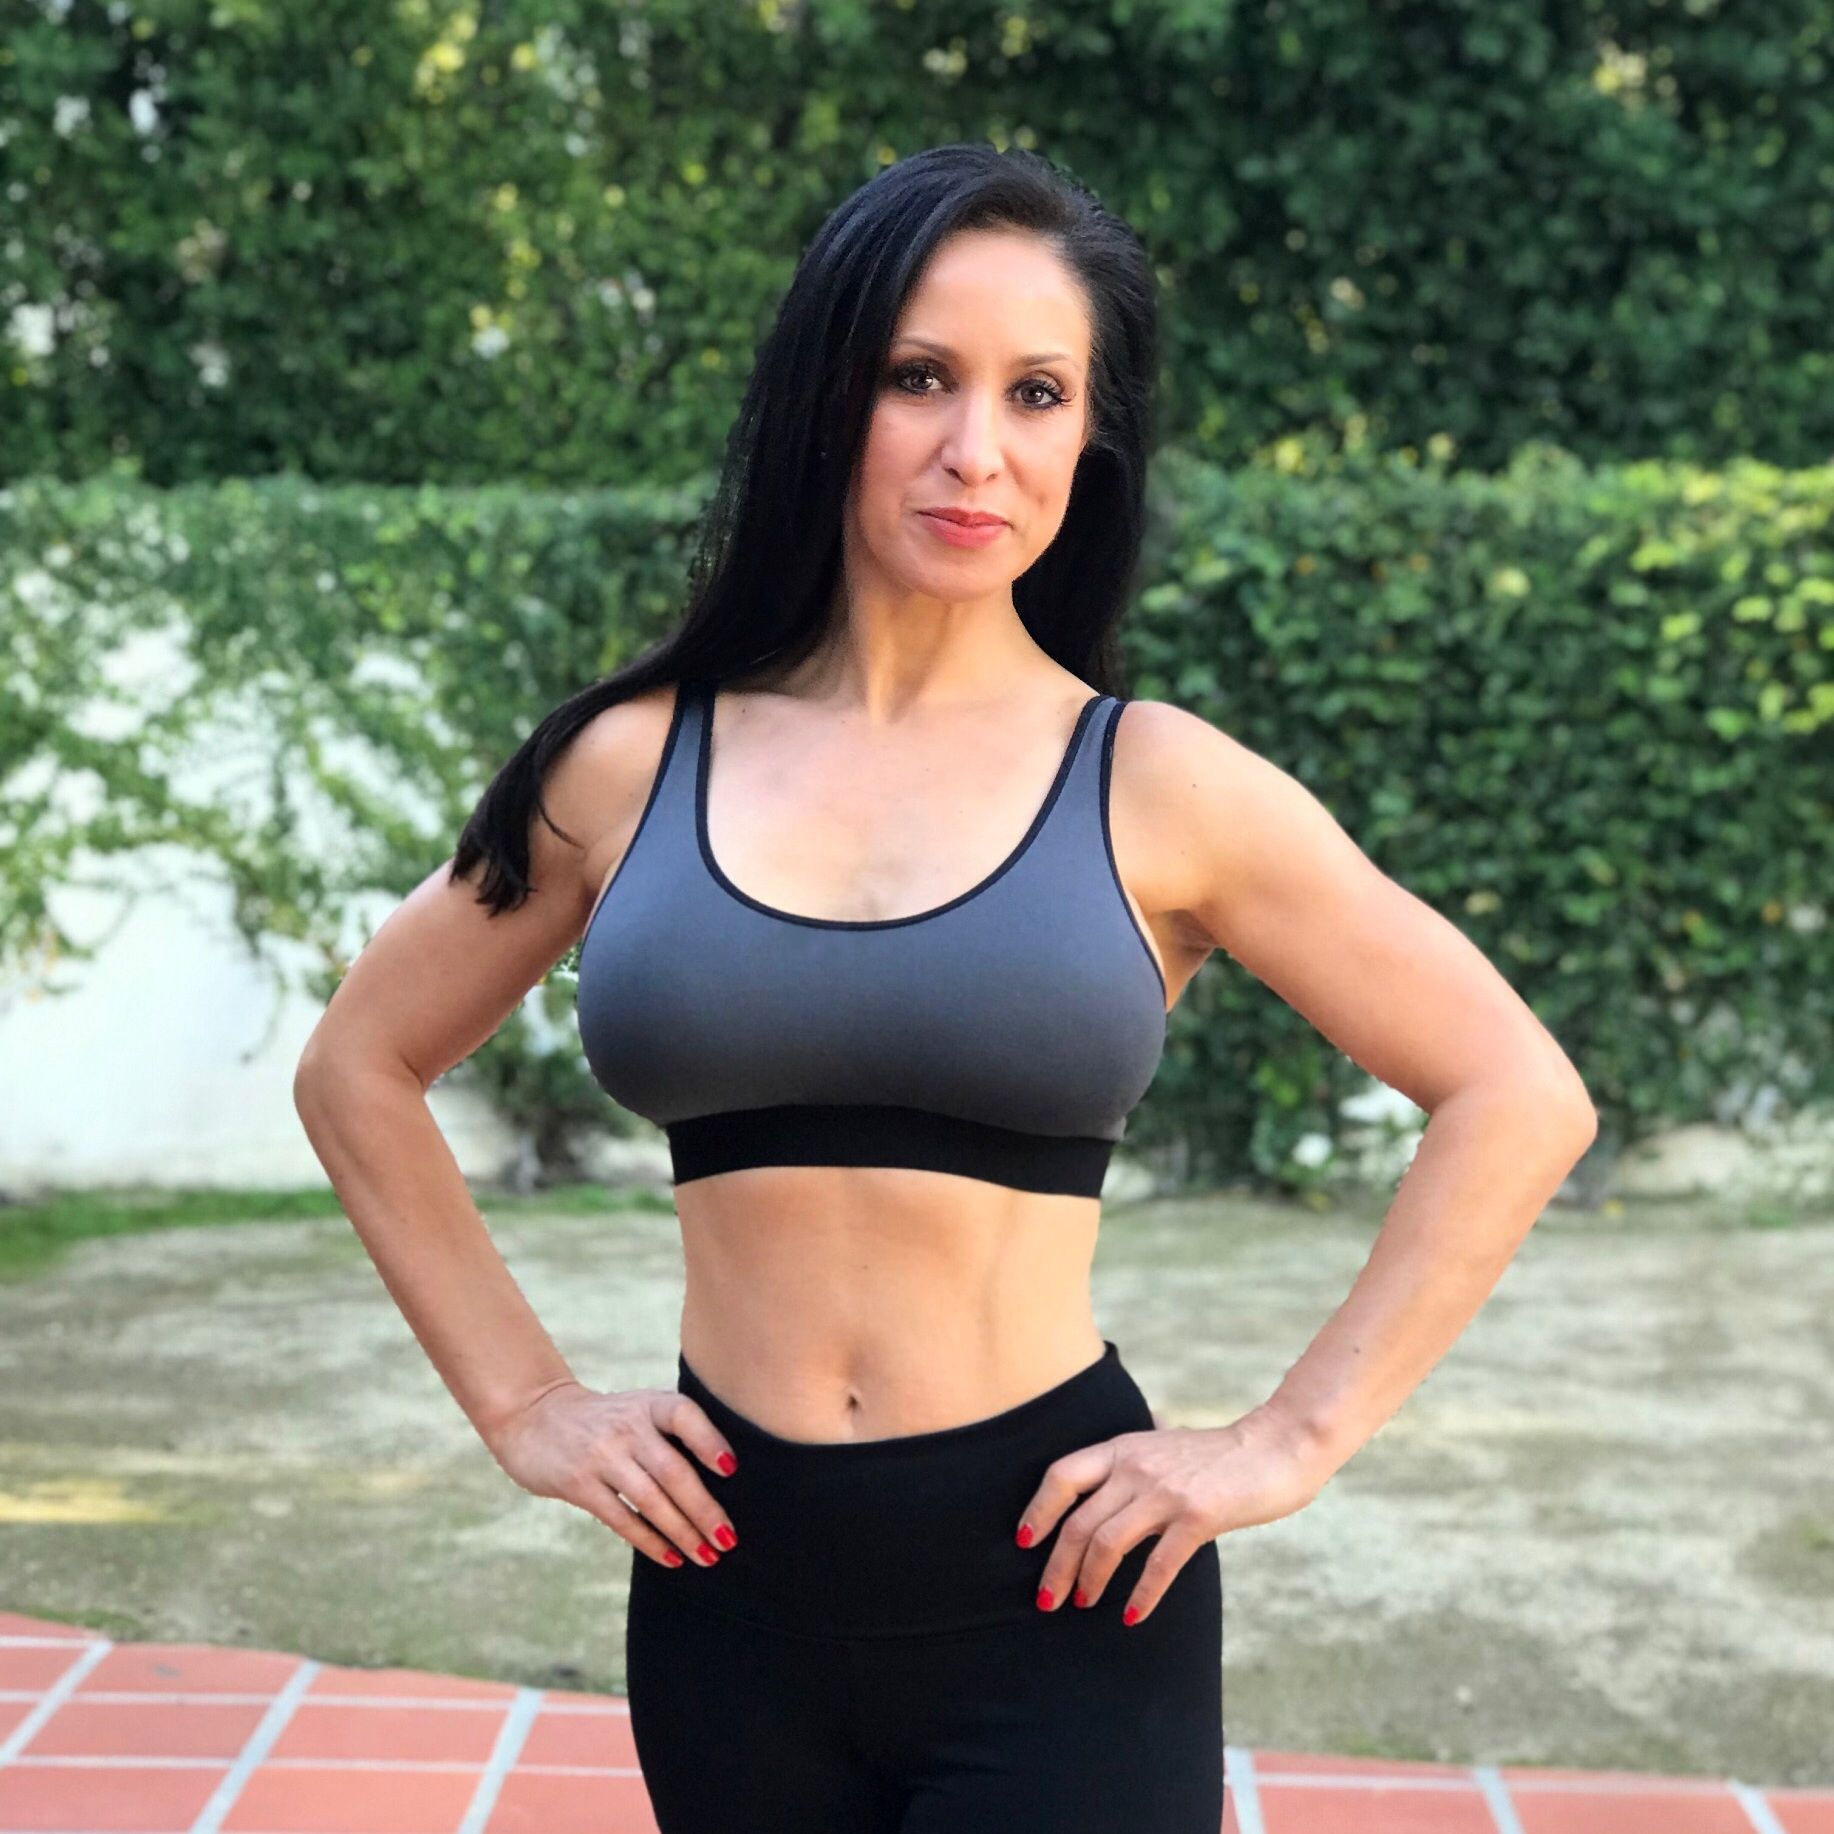 Our Founder… - A lifelong fitness enthusiast, I changed careers from years in Wealth Management to fulfilling a dream in the fitness industry. I truly believe you can do anything you put your mind to and anything worth doing is worth doing right. As I saw myself in my prior career become more sedentary and my physical health deteriorate from lack of movement and stress, I decided to make powerful changes in myself.I am an ACE Certified Personal Trainer, ACE Group Fitness Instructor, and ACE Fitness Nutrition Specialist focused on client's goals with a results driven enthusiasm.Join us for a consultation for your personal fitness, senior loved one, corporate wellness planning, or nutritional needs.